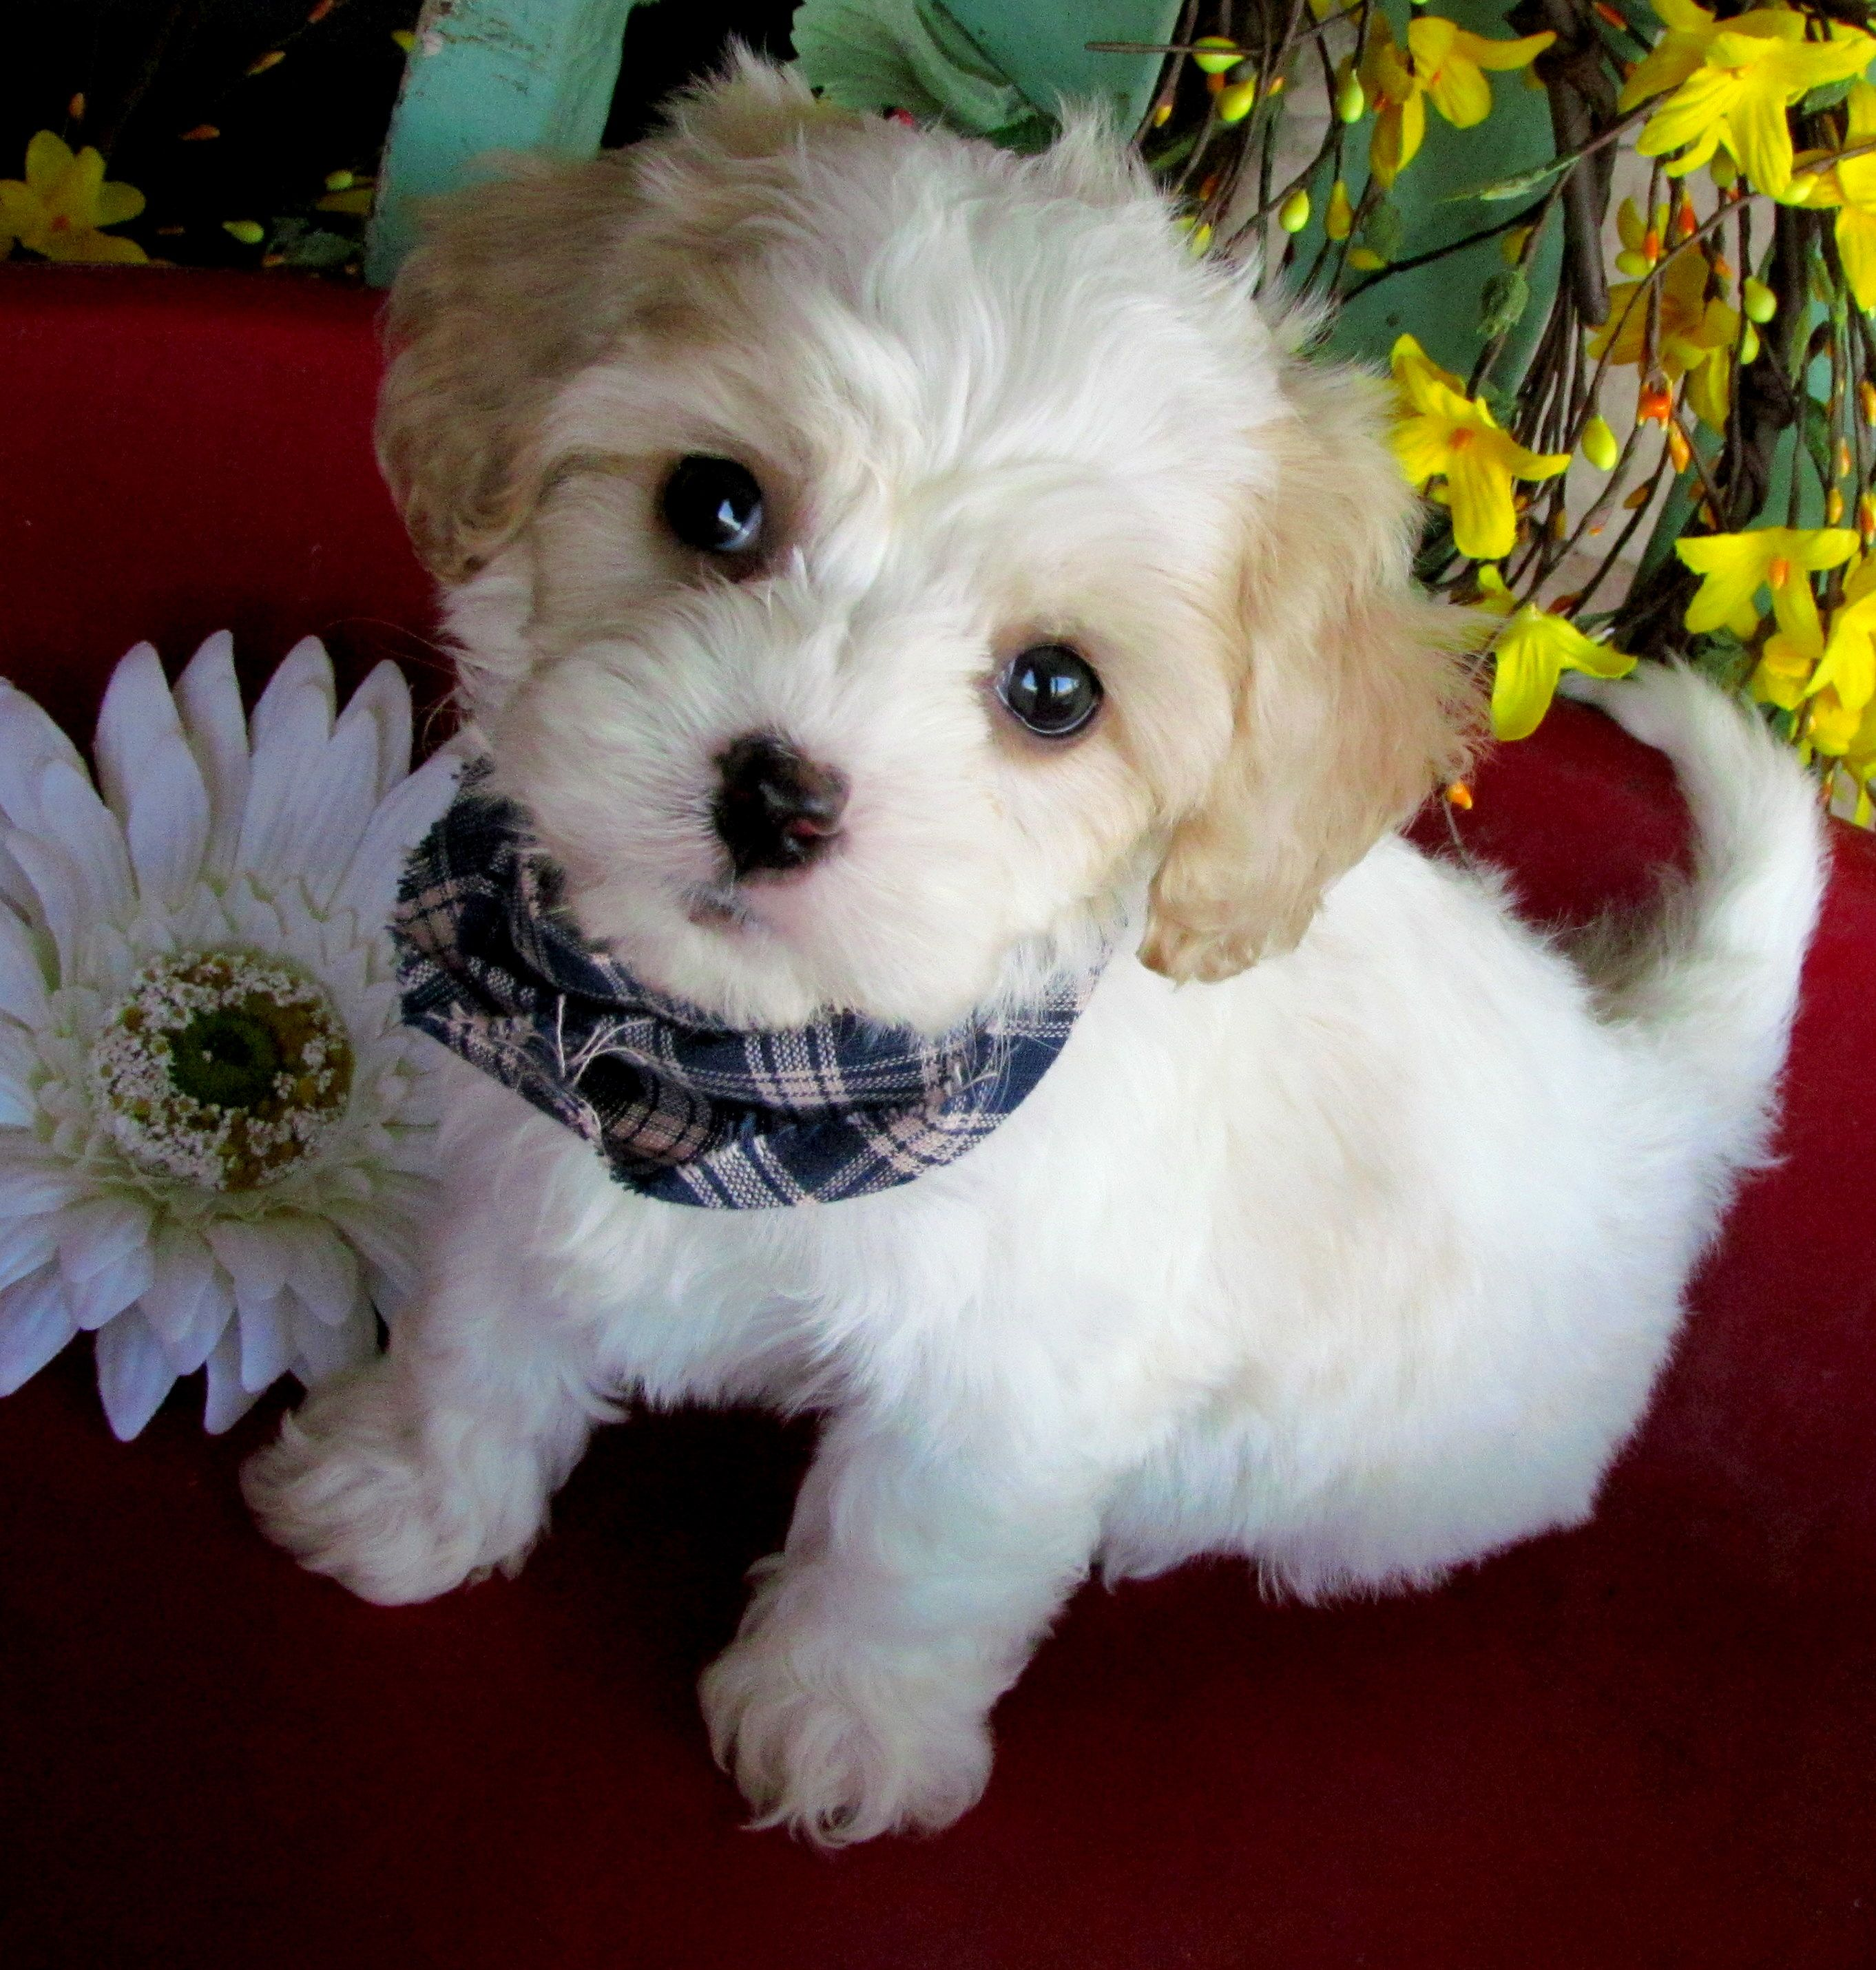 Cavachon puppies for sale Cavachon